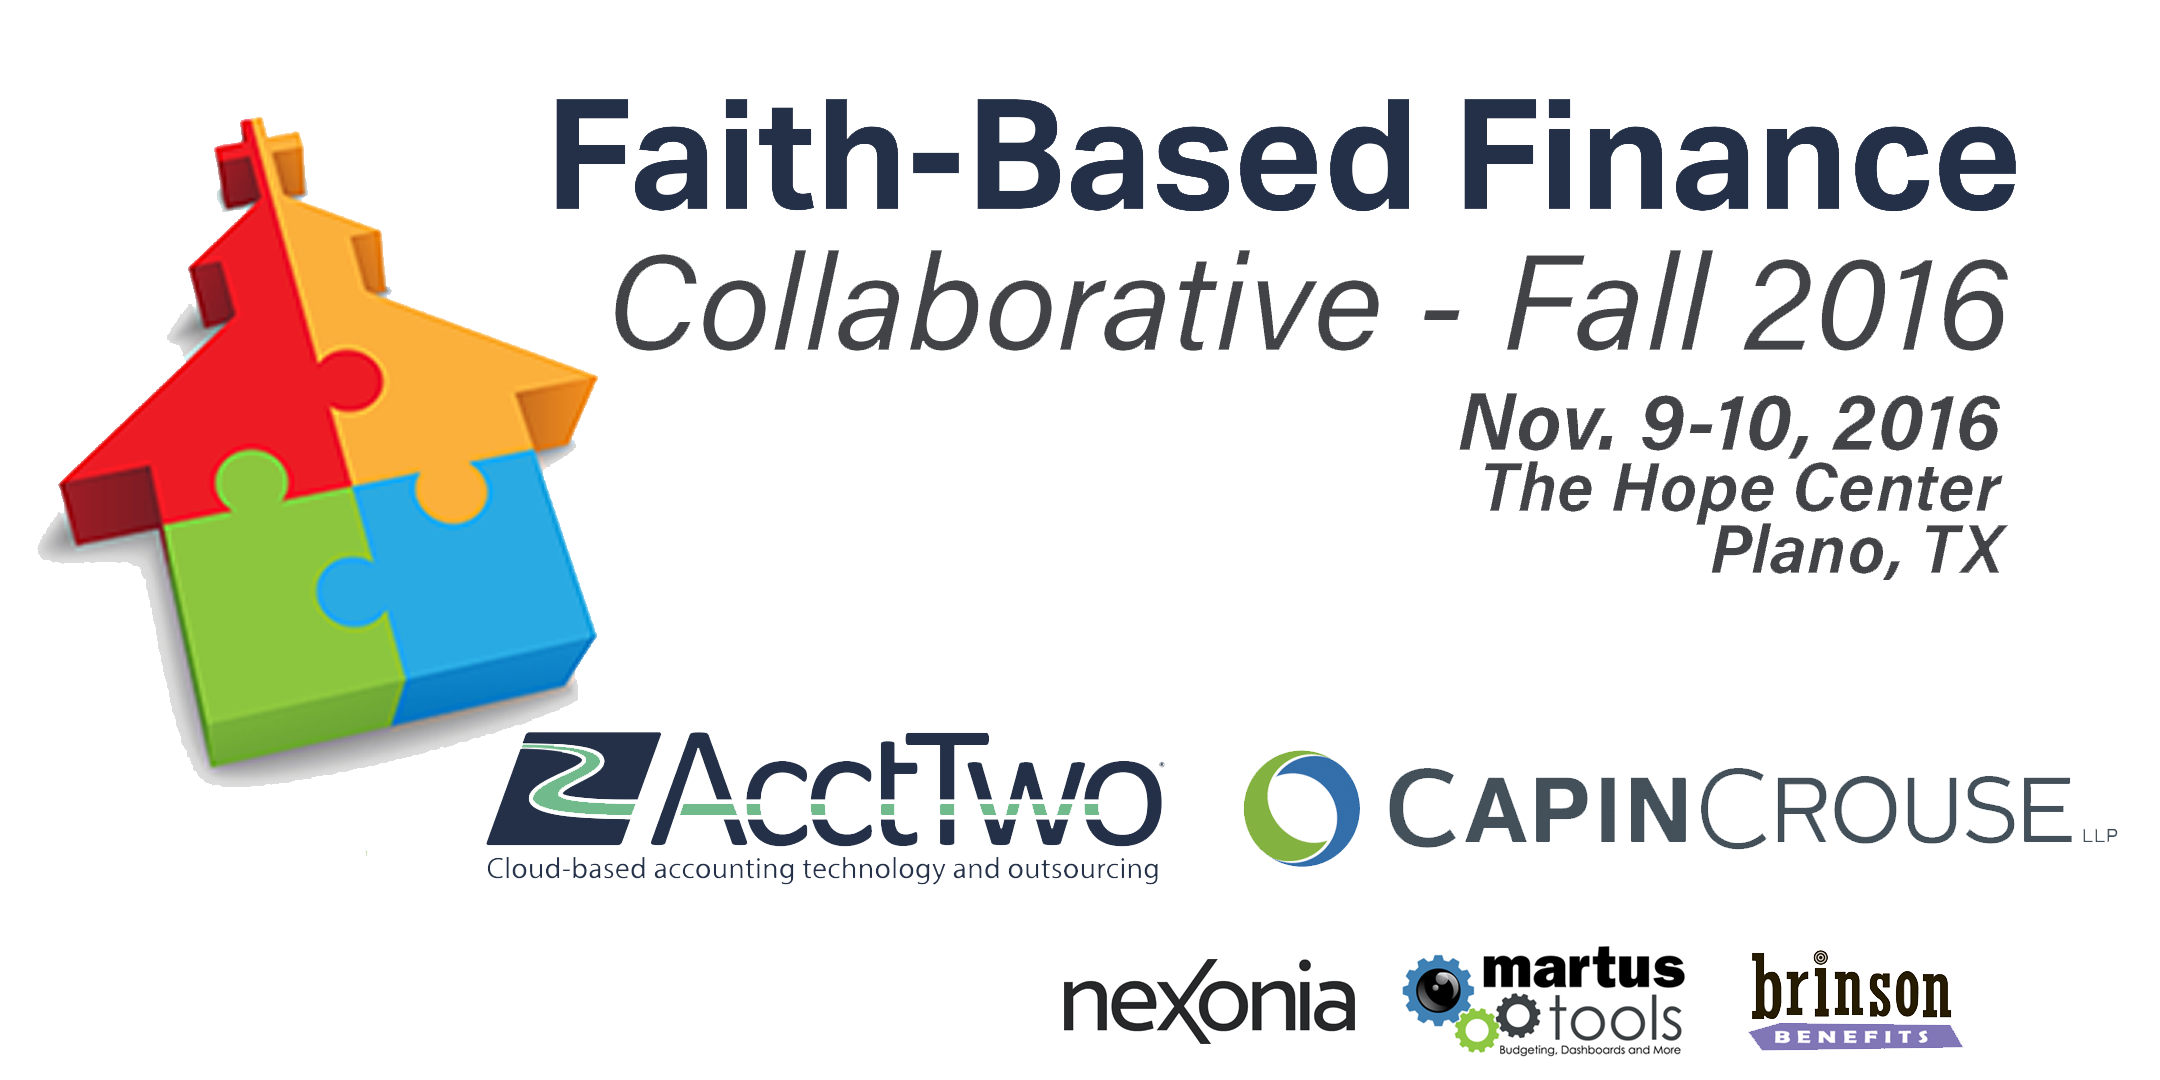 Join Us for the Faith-Based Finance Collaborative - Nov. 9-10 in Plano, TX